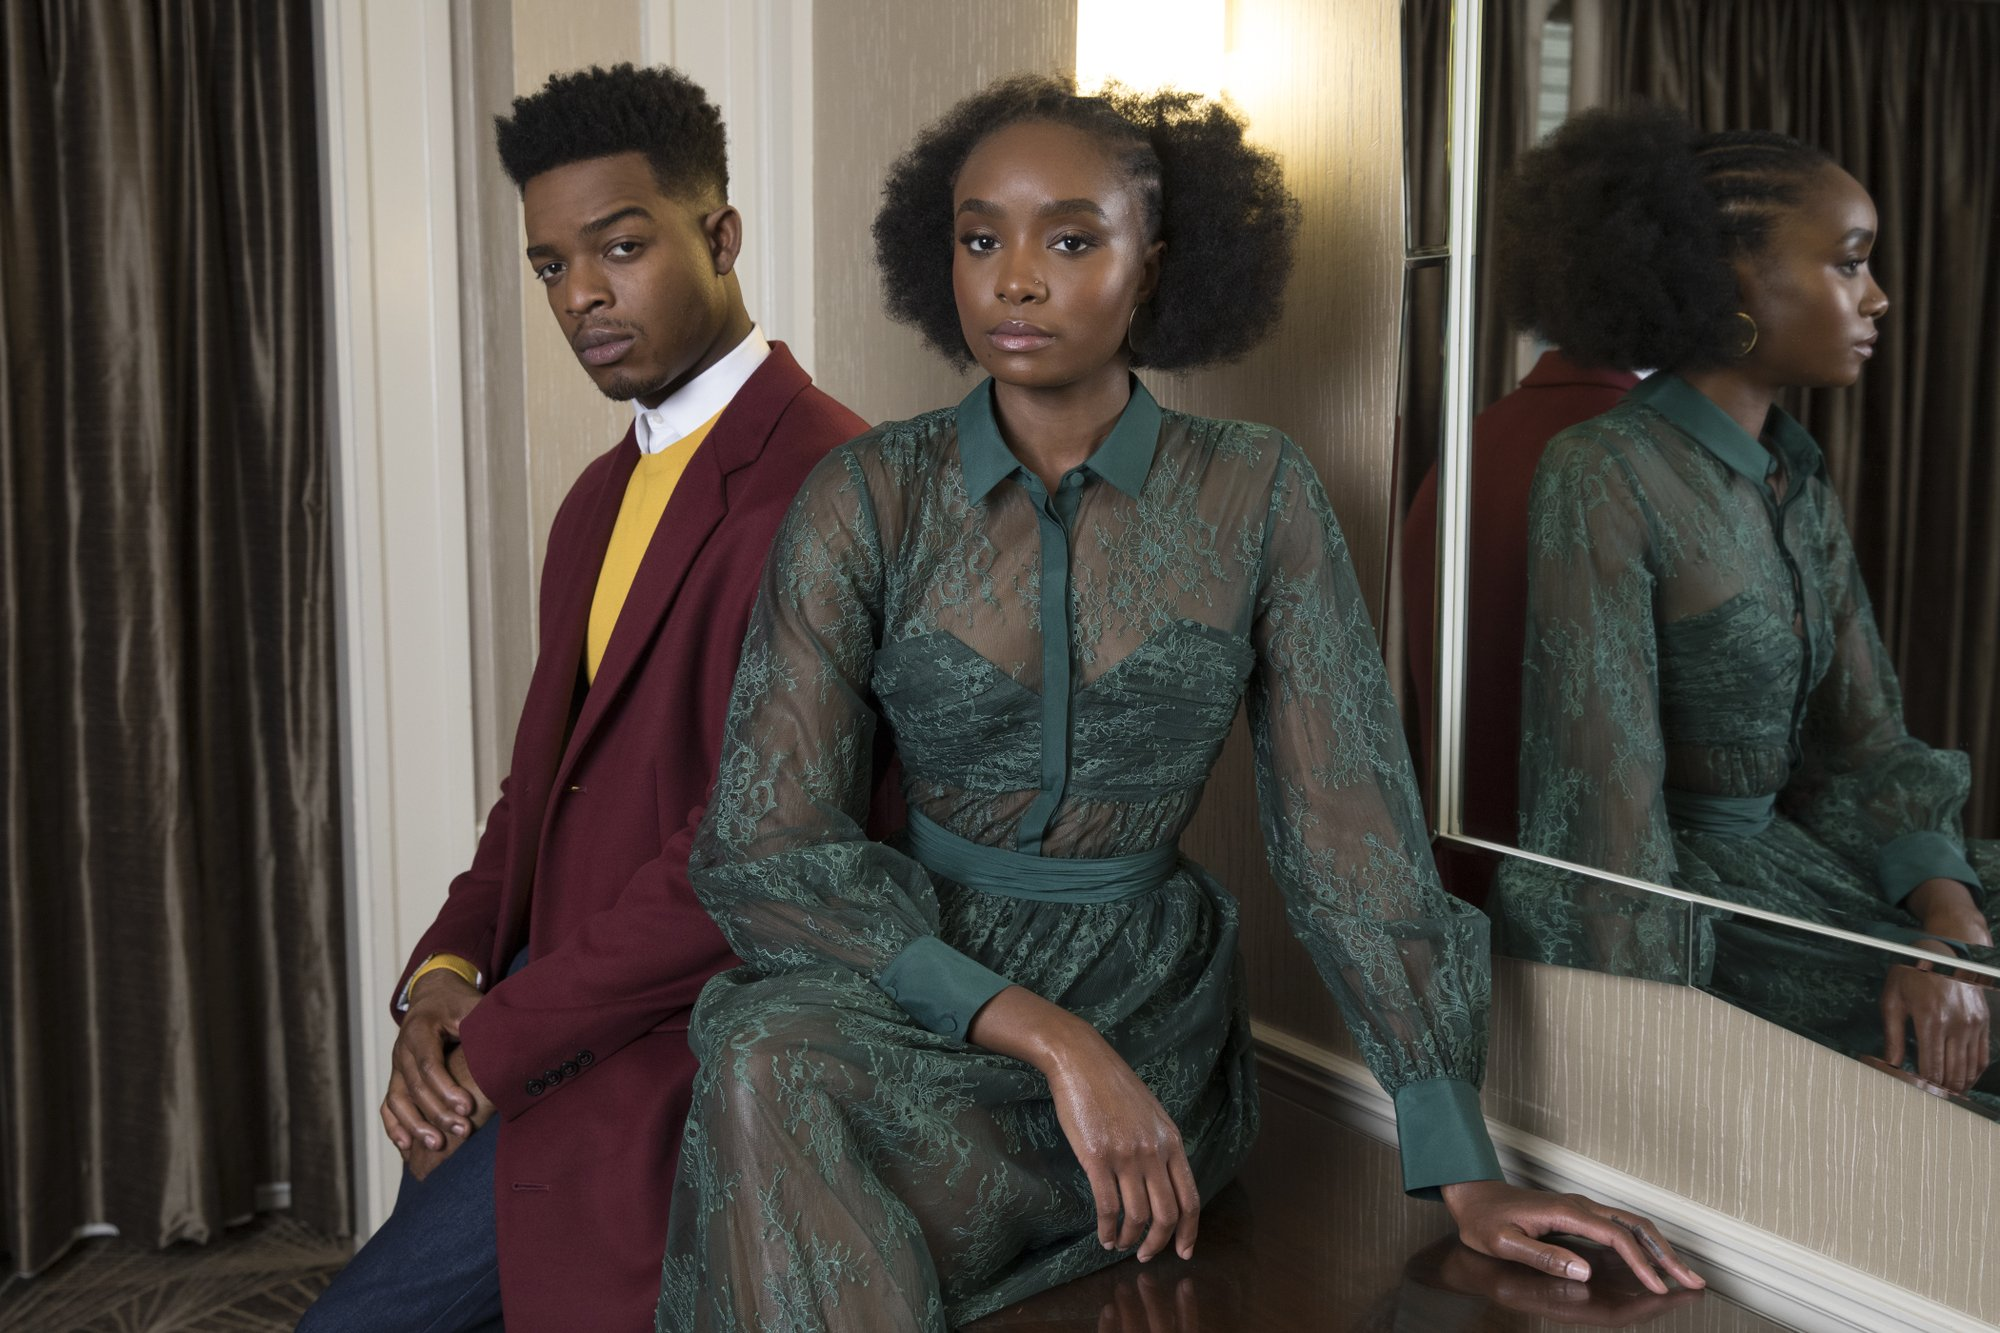 In 'Beale Street,' a radiant portrait of young black love